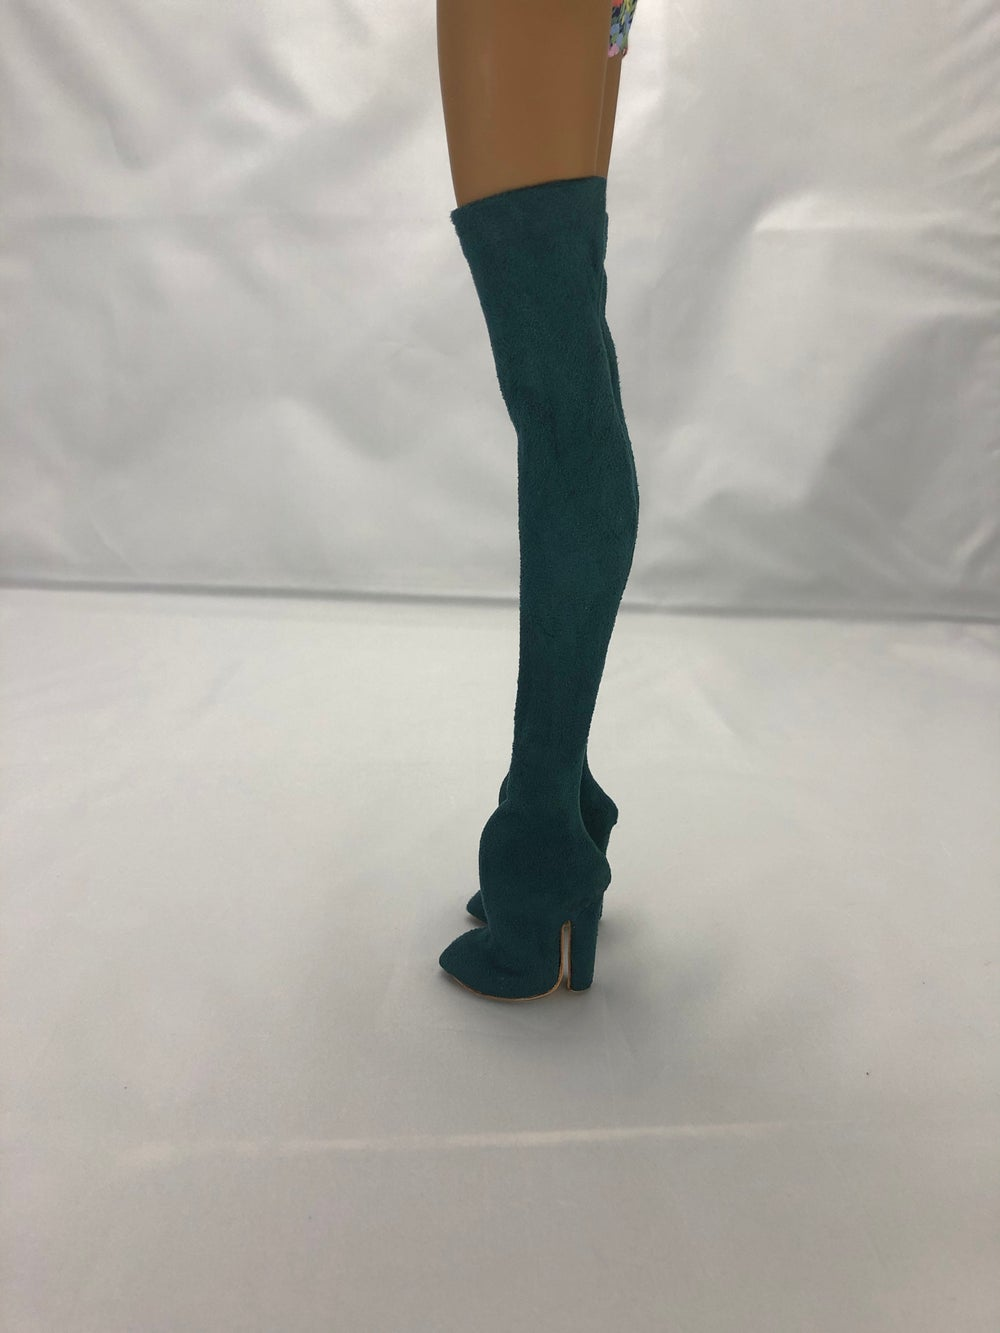 Teal Suede Thigh High Boots: Pidgin Doll p2